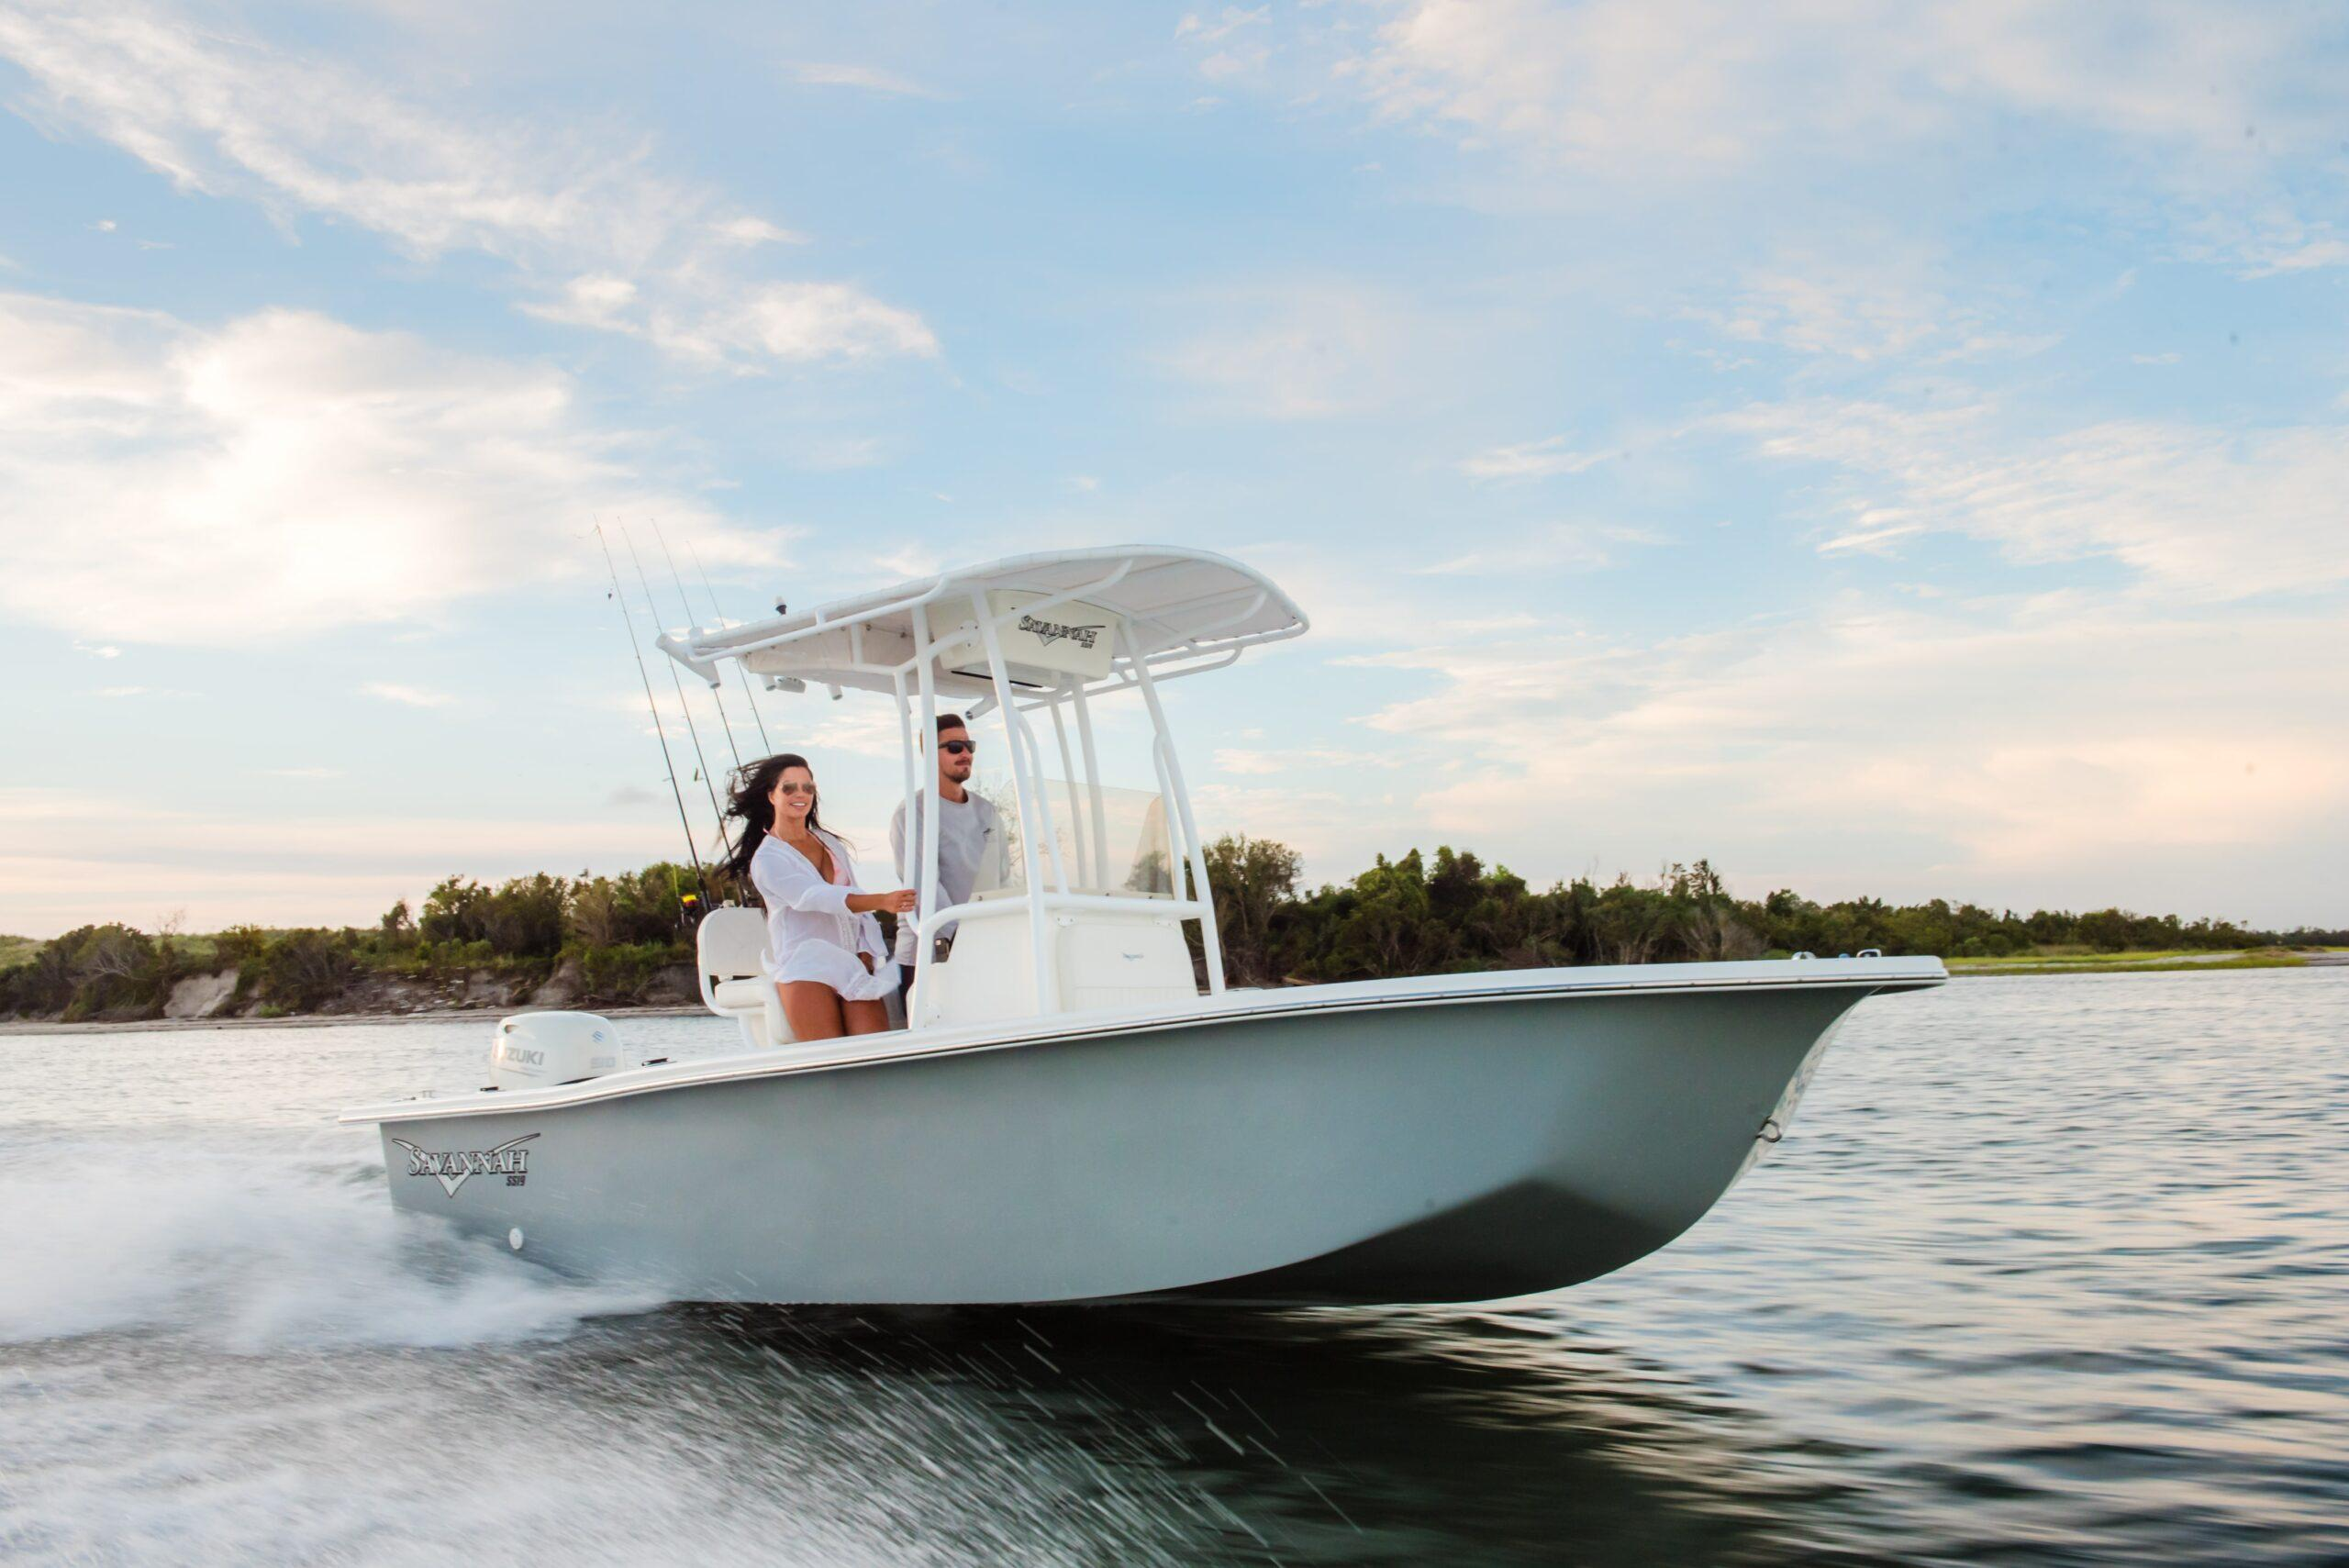 2 Hot New Fishing Skiffs For Anglers In 2021 thumbnail